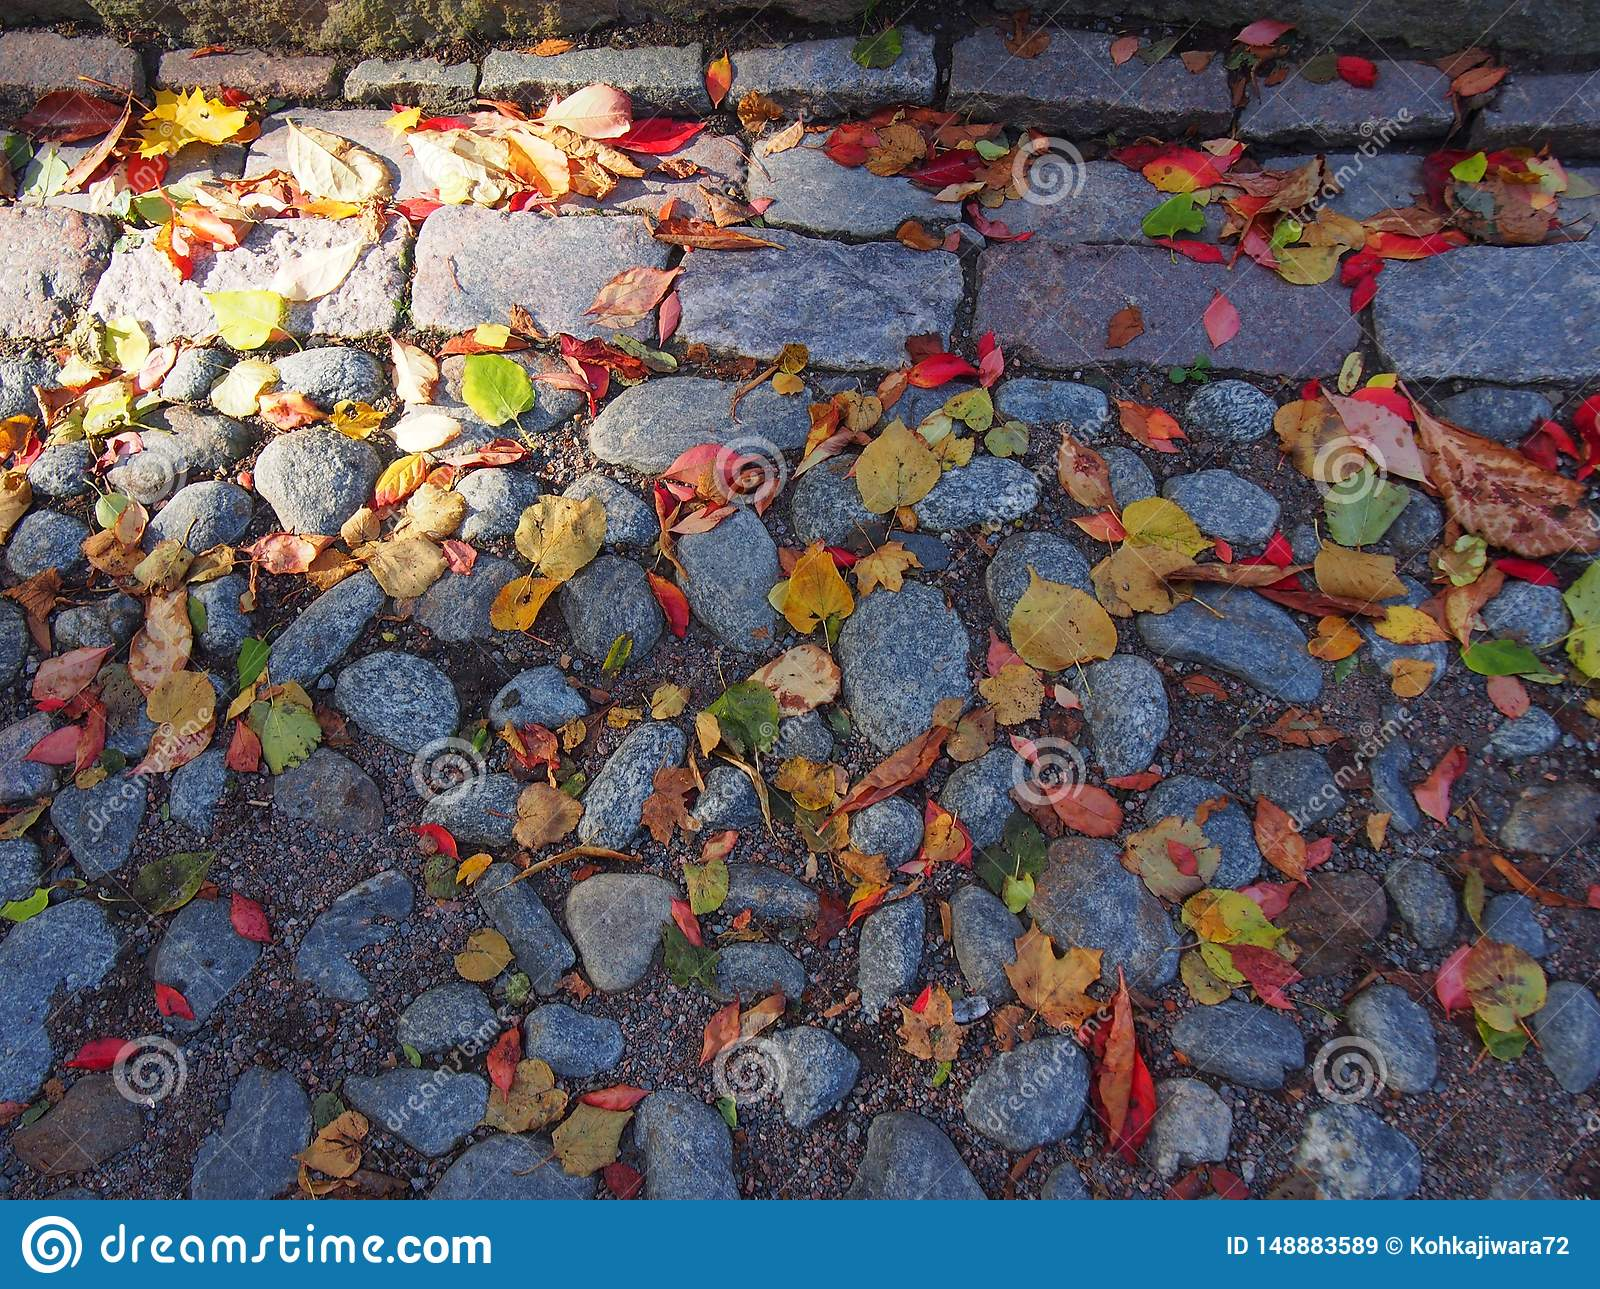 Autumn leaves on the pavement, Suomelinna Finland